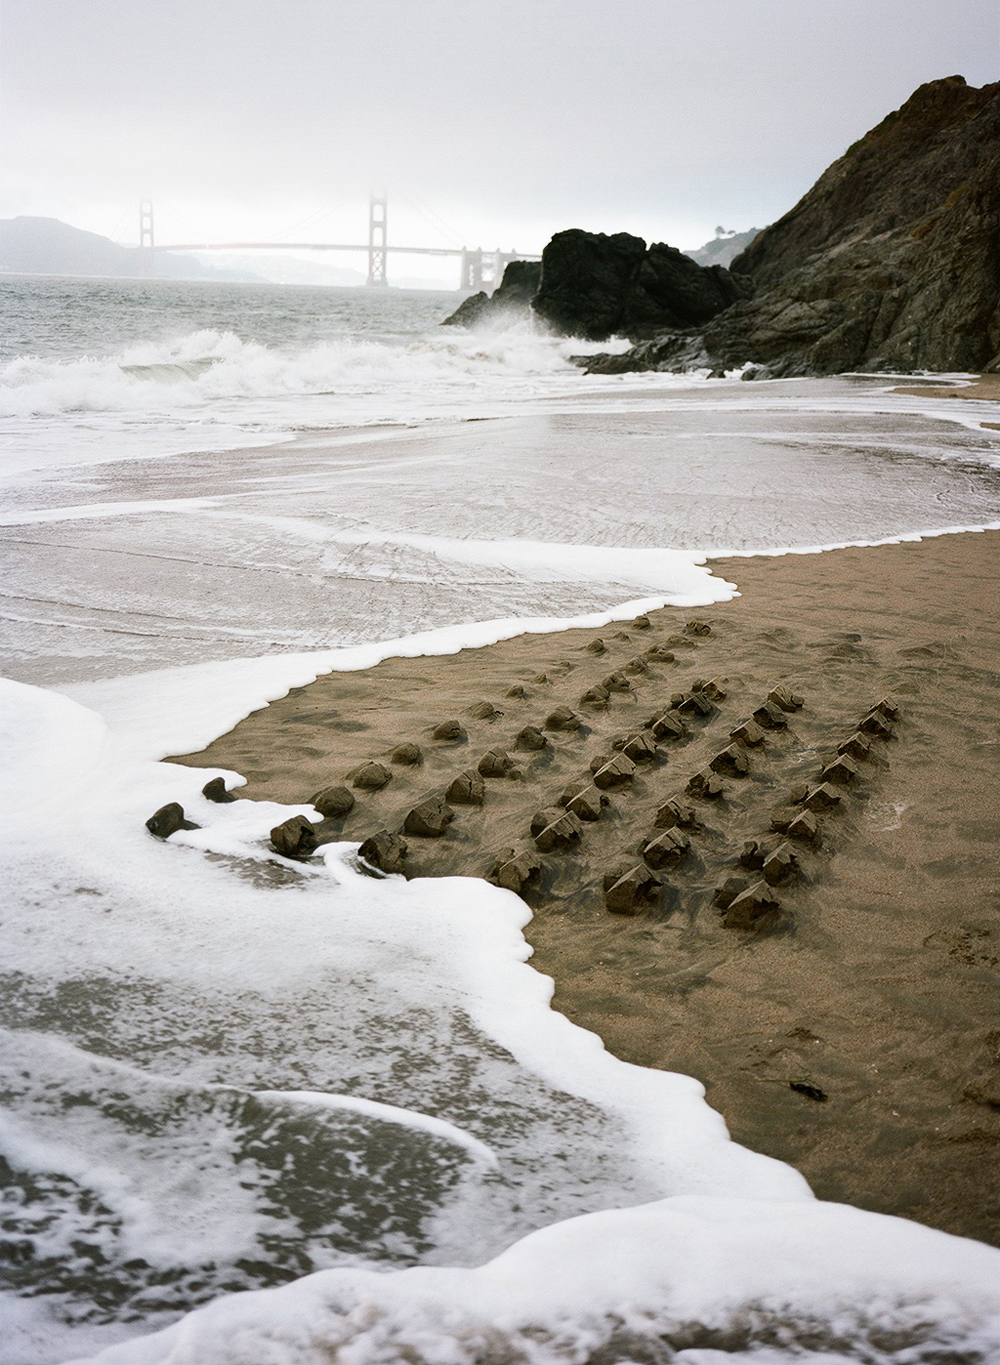 """For the first part of this series, Wright created a mould in the form of an L-shaped suburban dwelling, and set out a series of sand castles on his local beach. This scale-model suburbia was washed away by the tide, which perhaps urges us to consider the relative transience of so solid a symbol of the American dream, particularly since the 2007 subprime mortgage collapse. "" Artist's statement: ""In Master Plan, I am conflating a child's sandcastle with architecture typifying postwar American suburbia. This three-part series culls artifacts from my childhood, investigating suburbia in its vision and legacy.Phase One focuses on the mass-produced tract house, re-examining it as symbol for the model American Dream."""